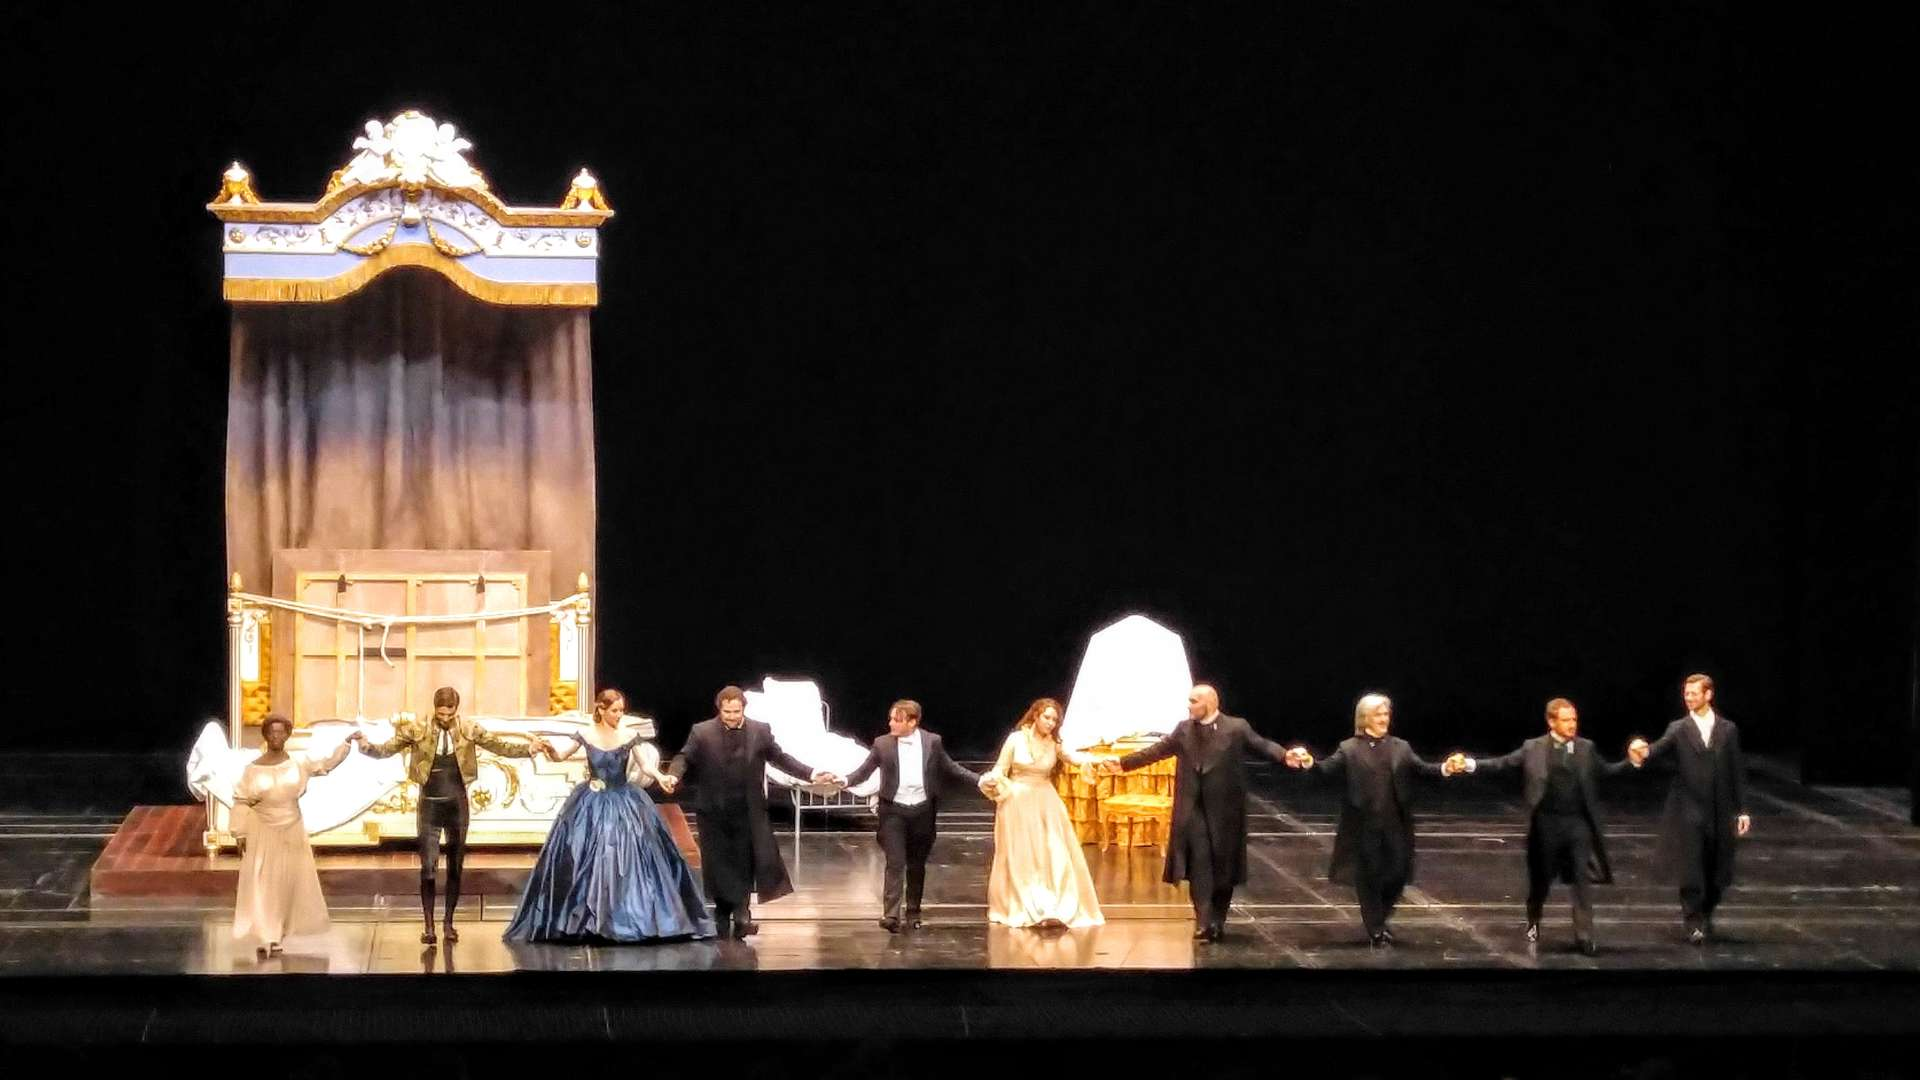 Curtain Call, La Traviata, Opéra national de Paris, 1 June 2016